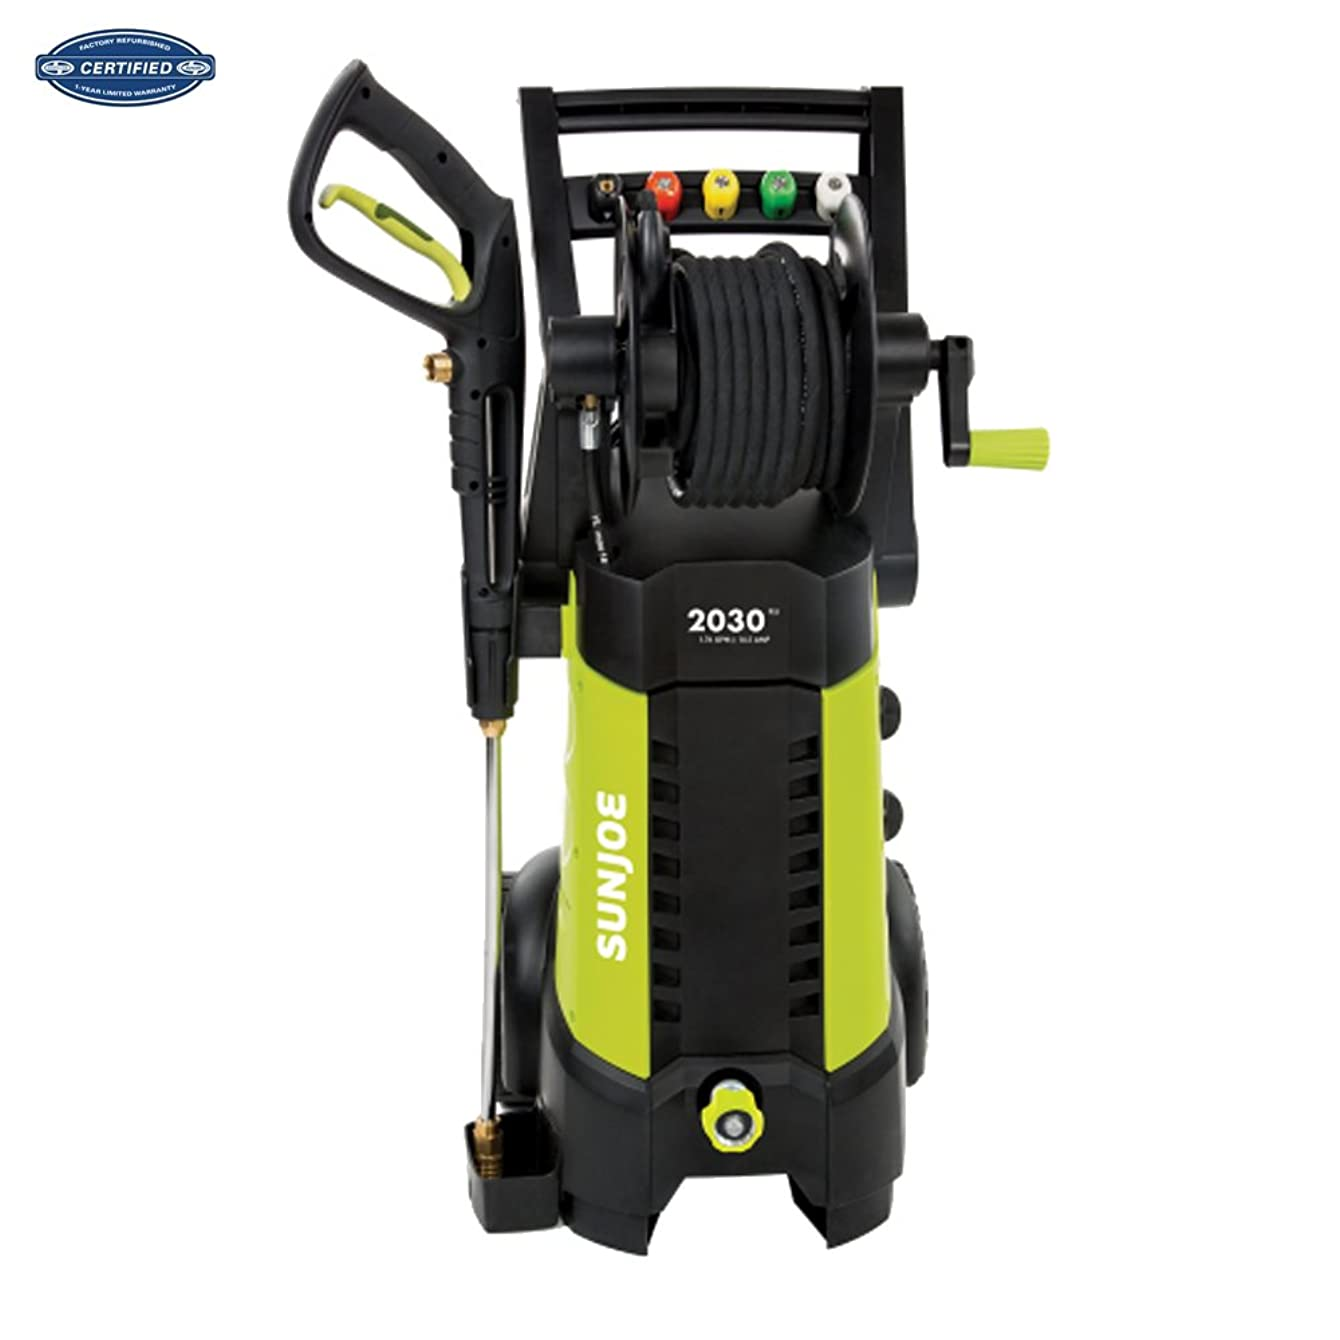 Sun Joe SPX3001 2030 PSI 1.76 GPM 14.5 AMP Electric Pressure Washer with Hose Reel, Green (Renewed)